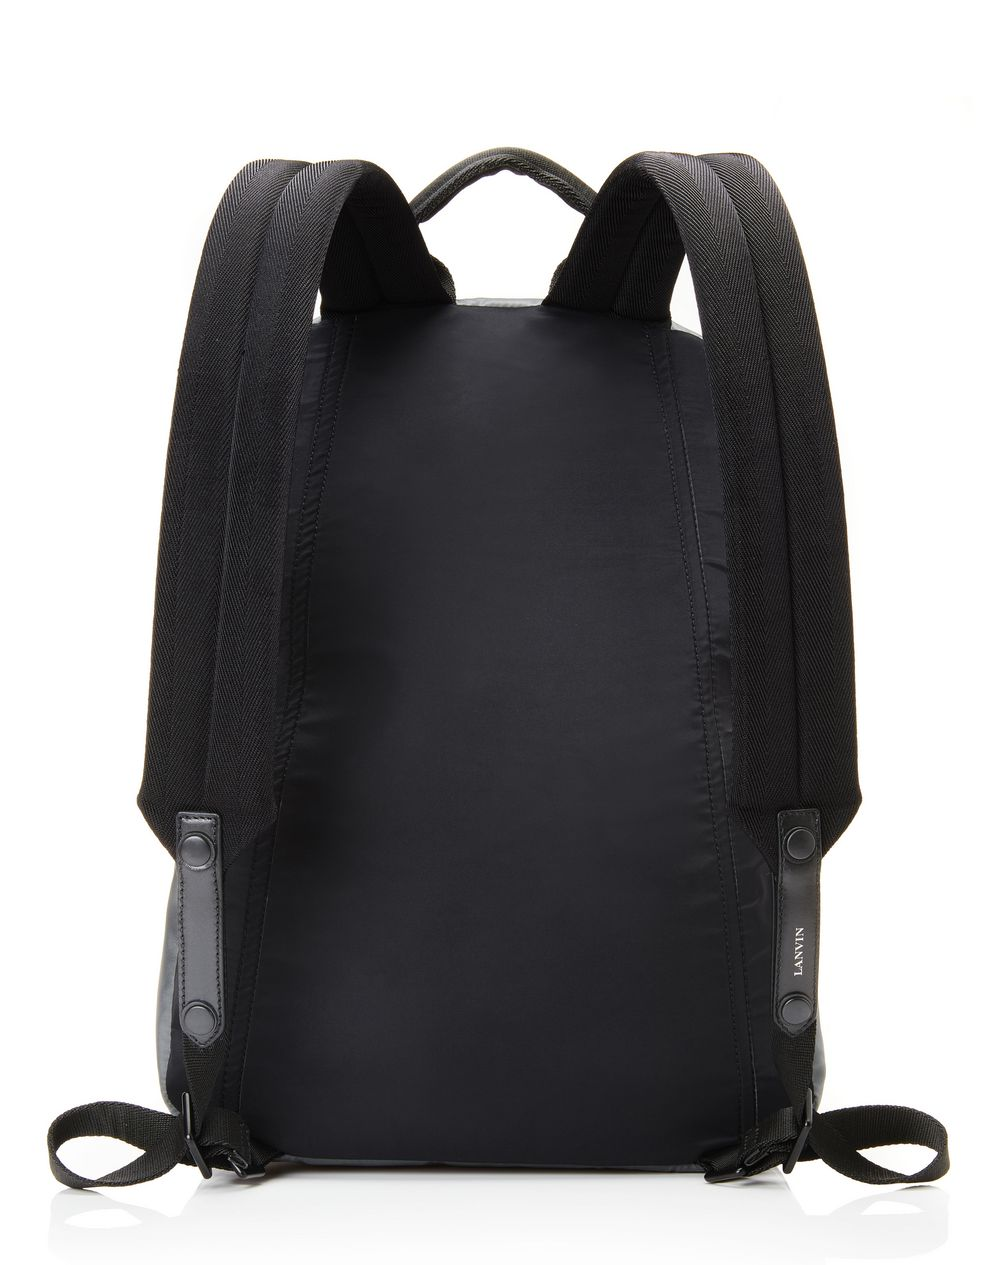 """NOTHING"" BACKPACK - Lanvin"